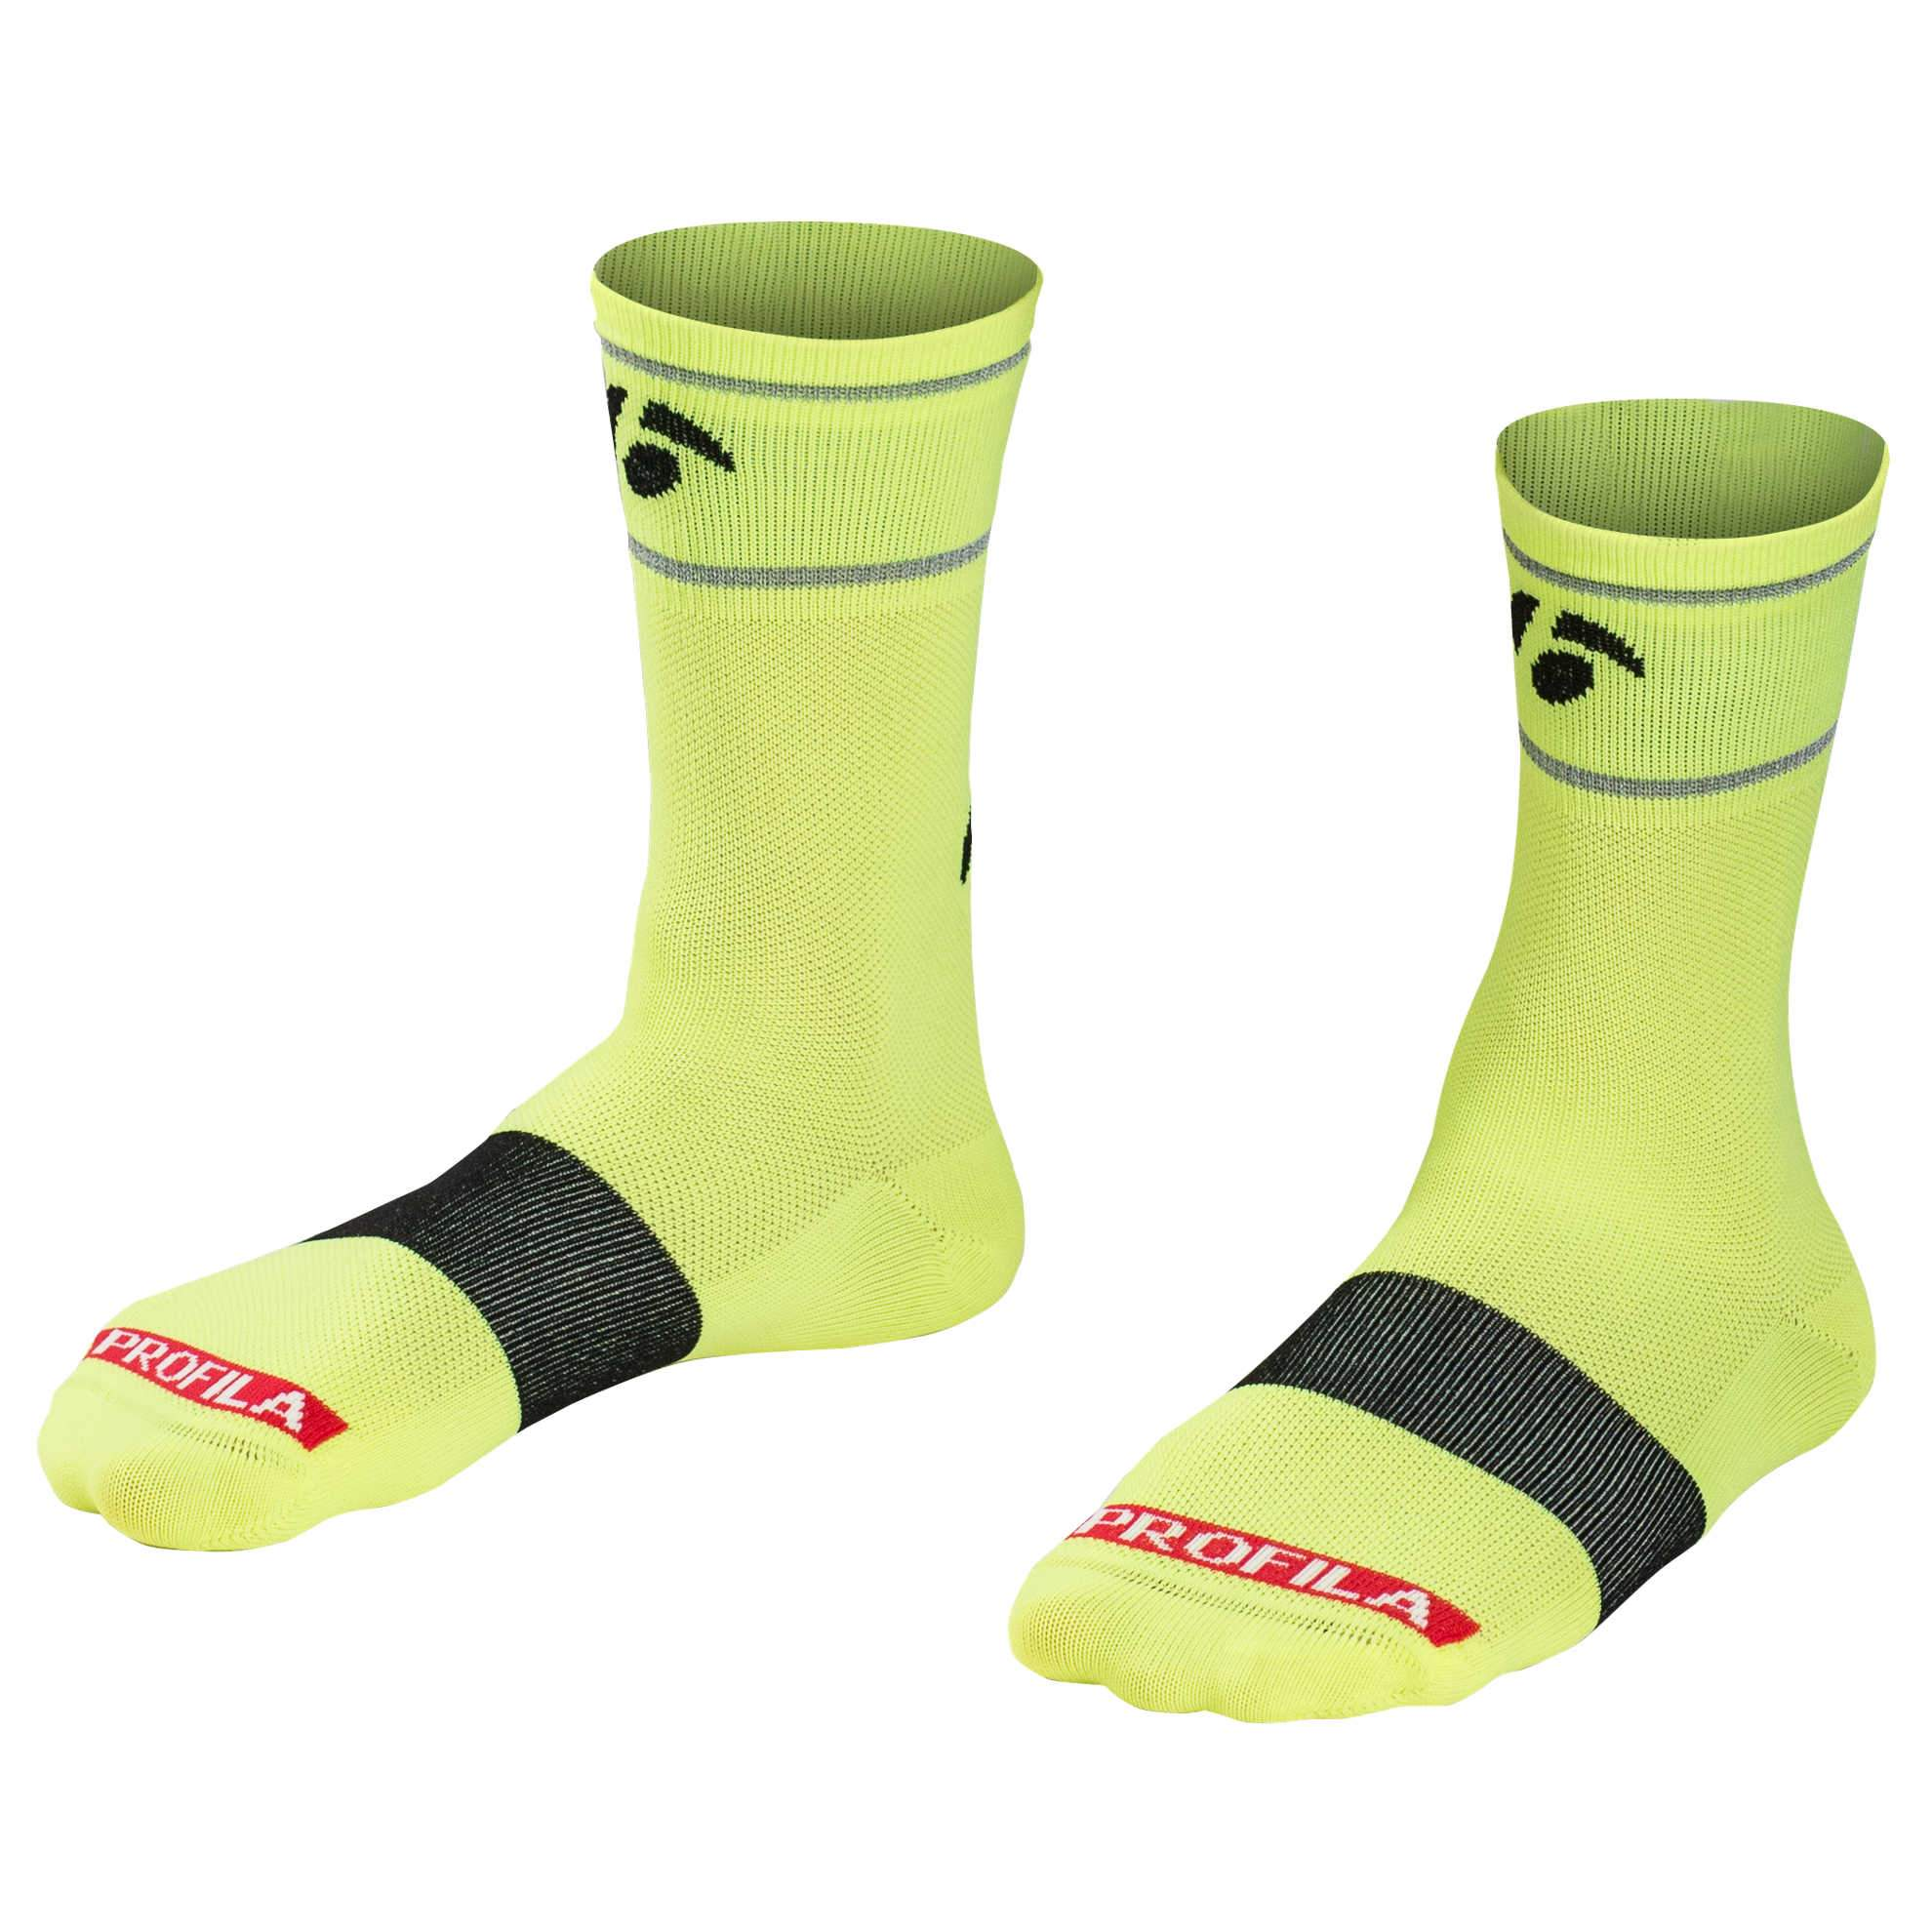 Giro Comp Racer 3-Pack Adult Cycling Socks